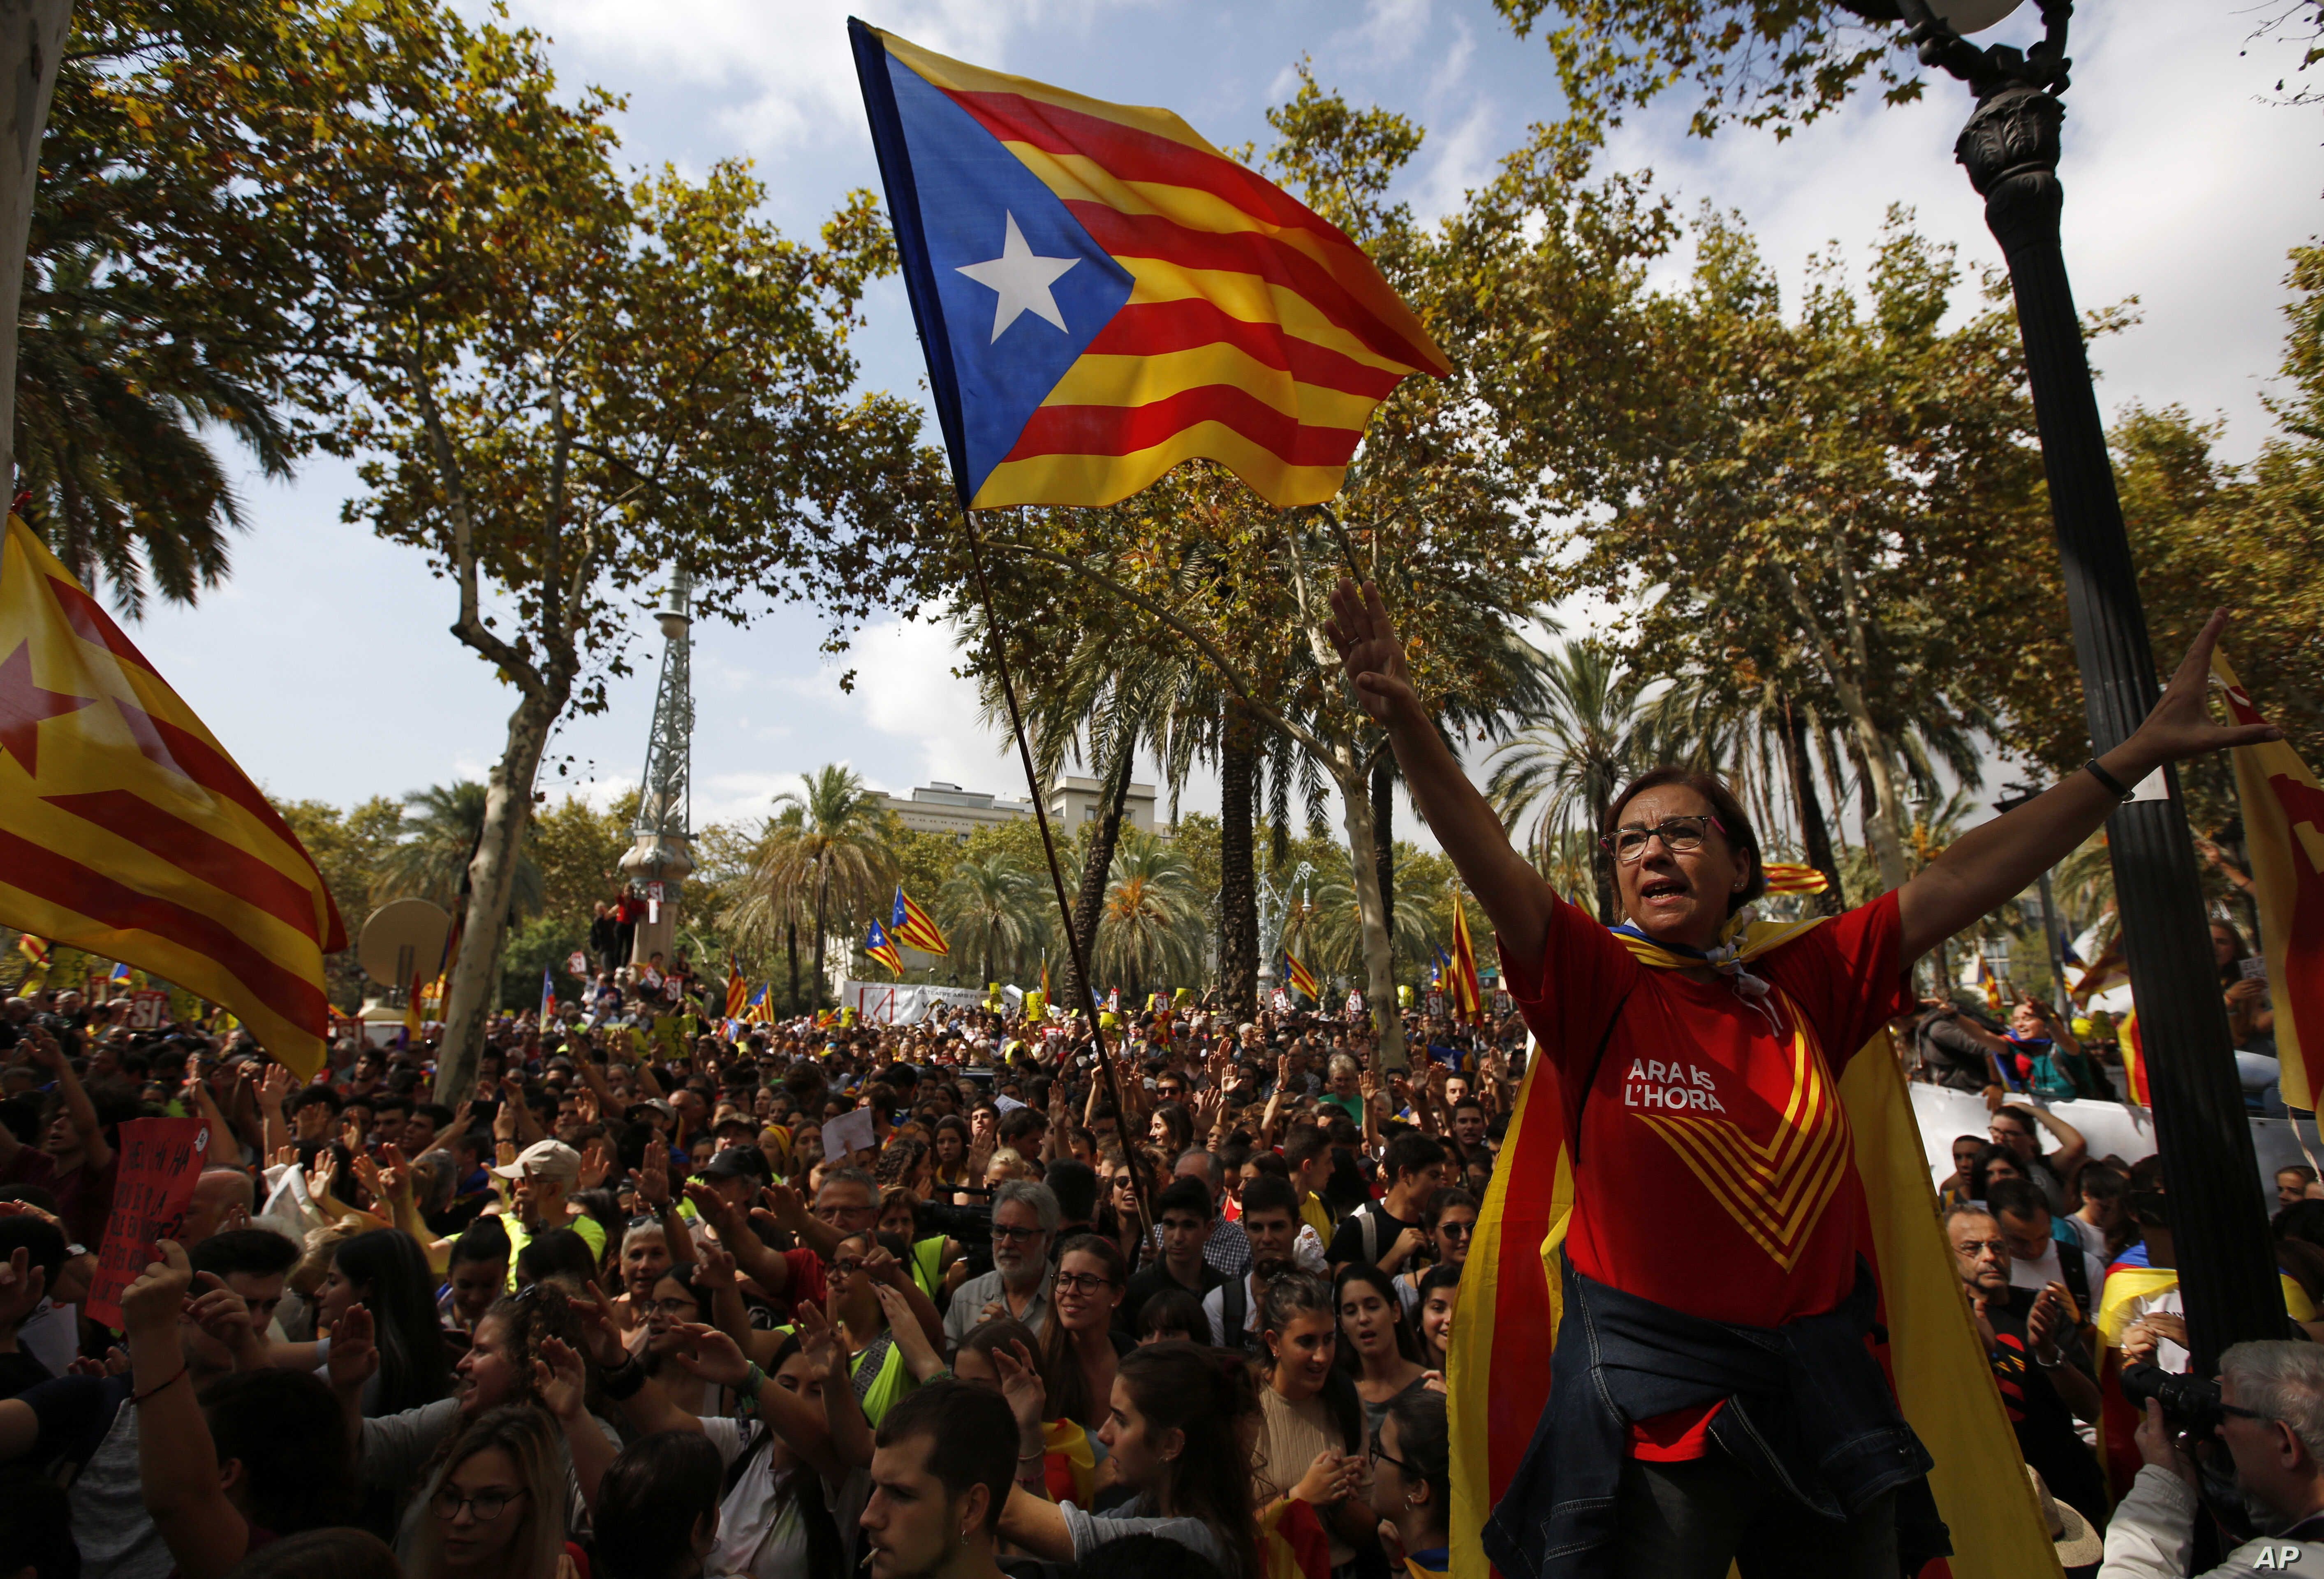 A woman gestures as others wave the ''estelada'' or Catalonia independence flags during a protest in Barcelona, Spain, Sept. 21, 2017.